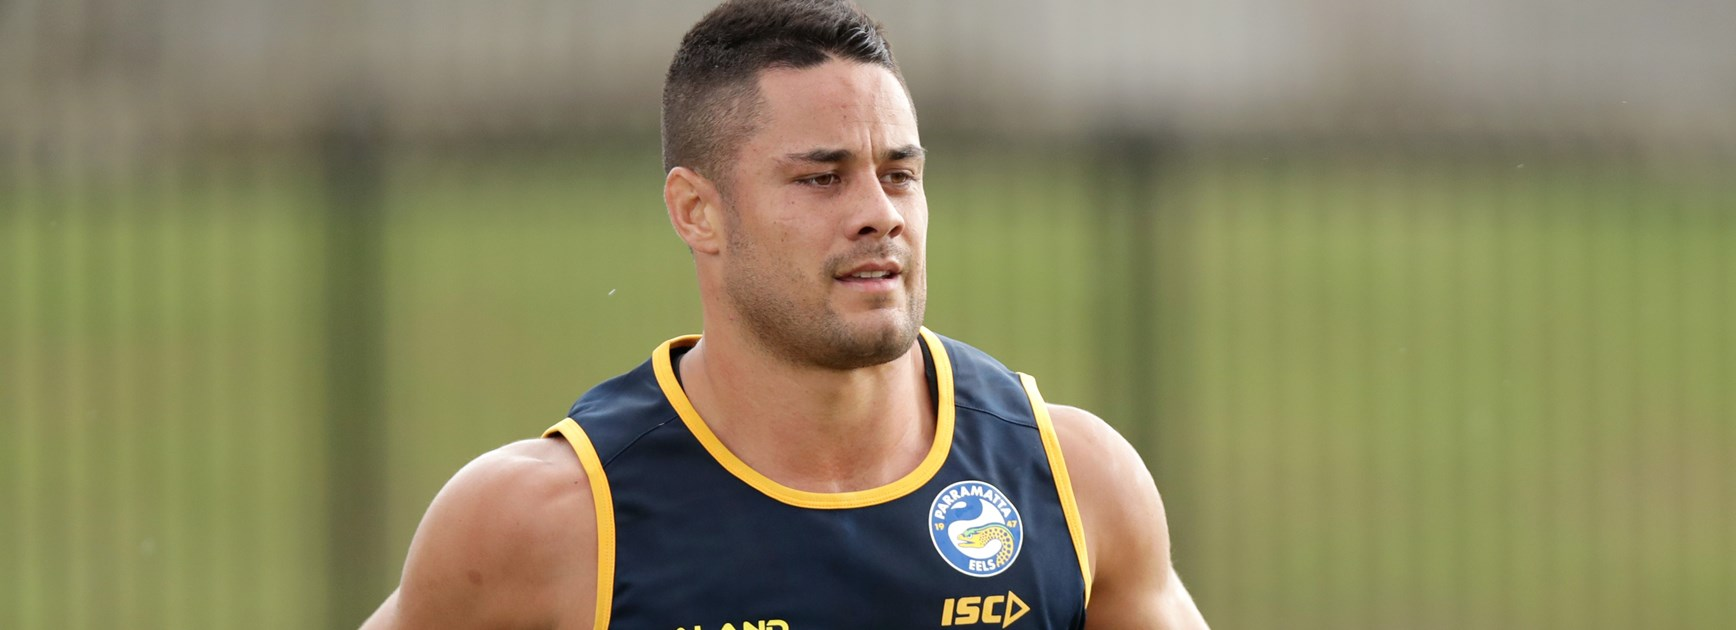 Jarryd Hayne on his first day back at training with the Parramatta Eels.